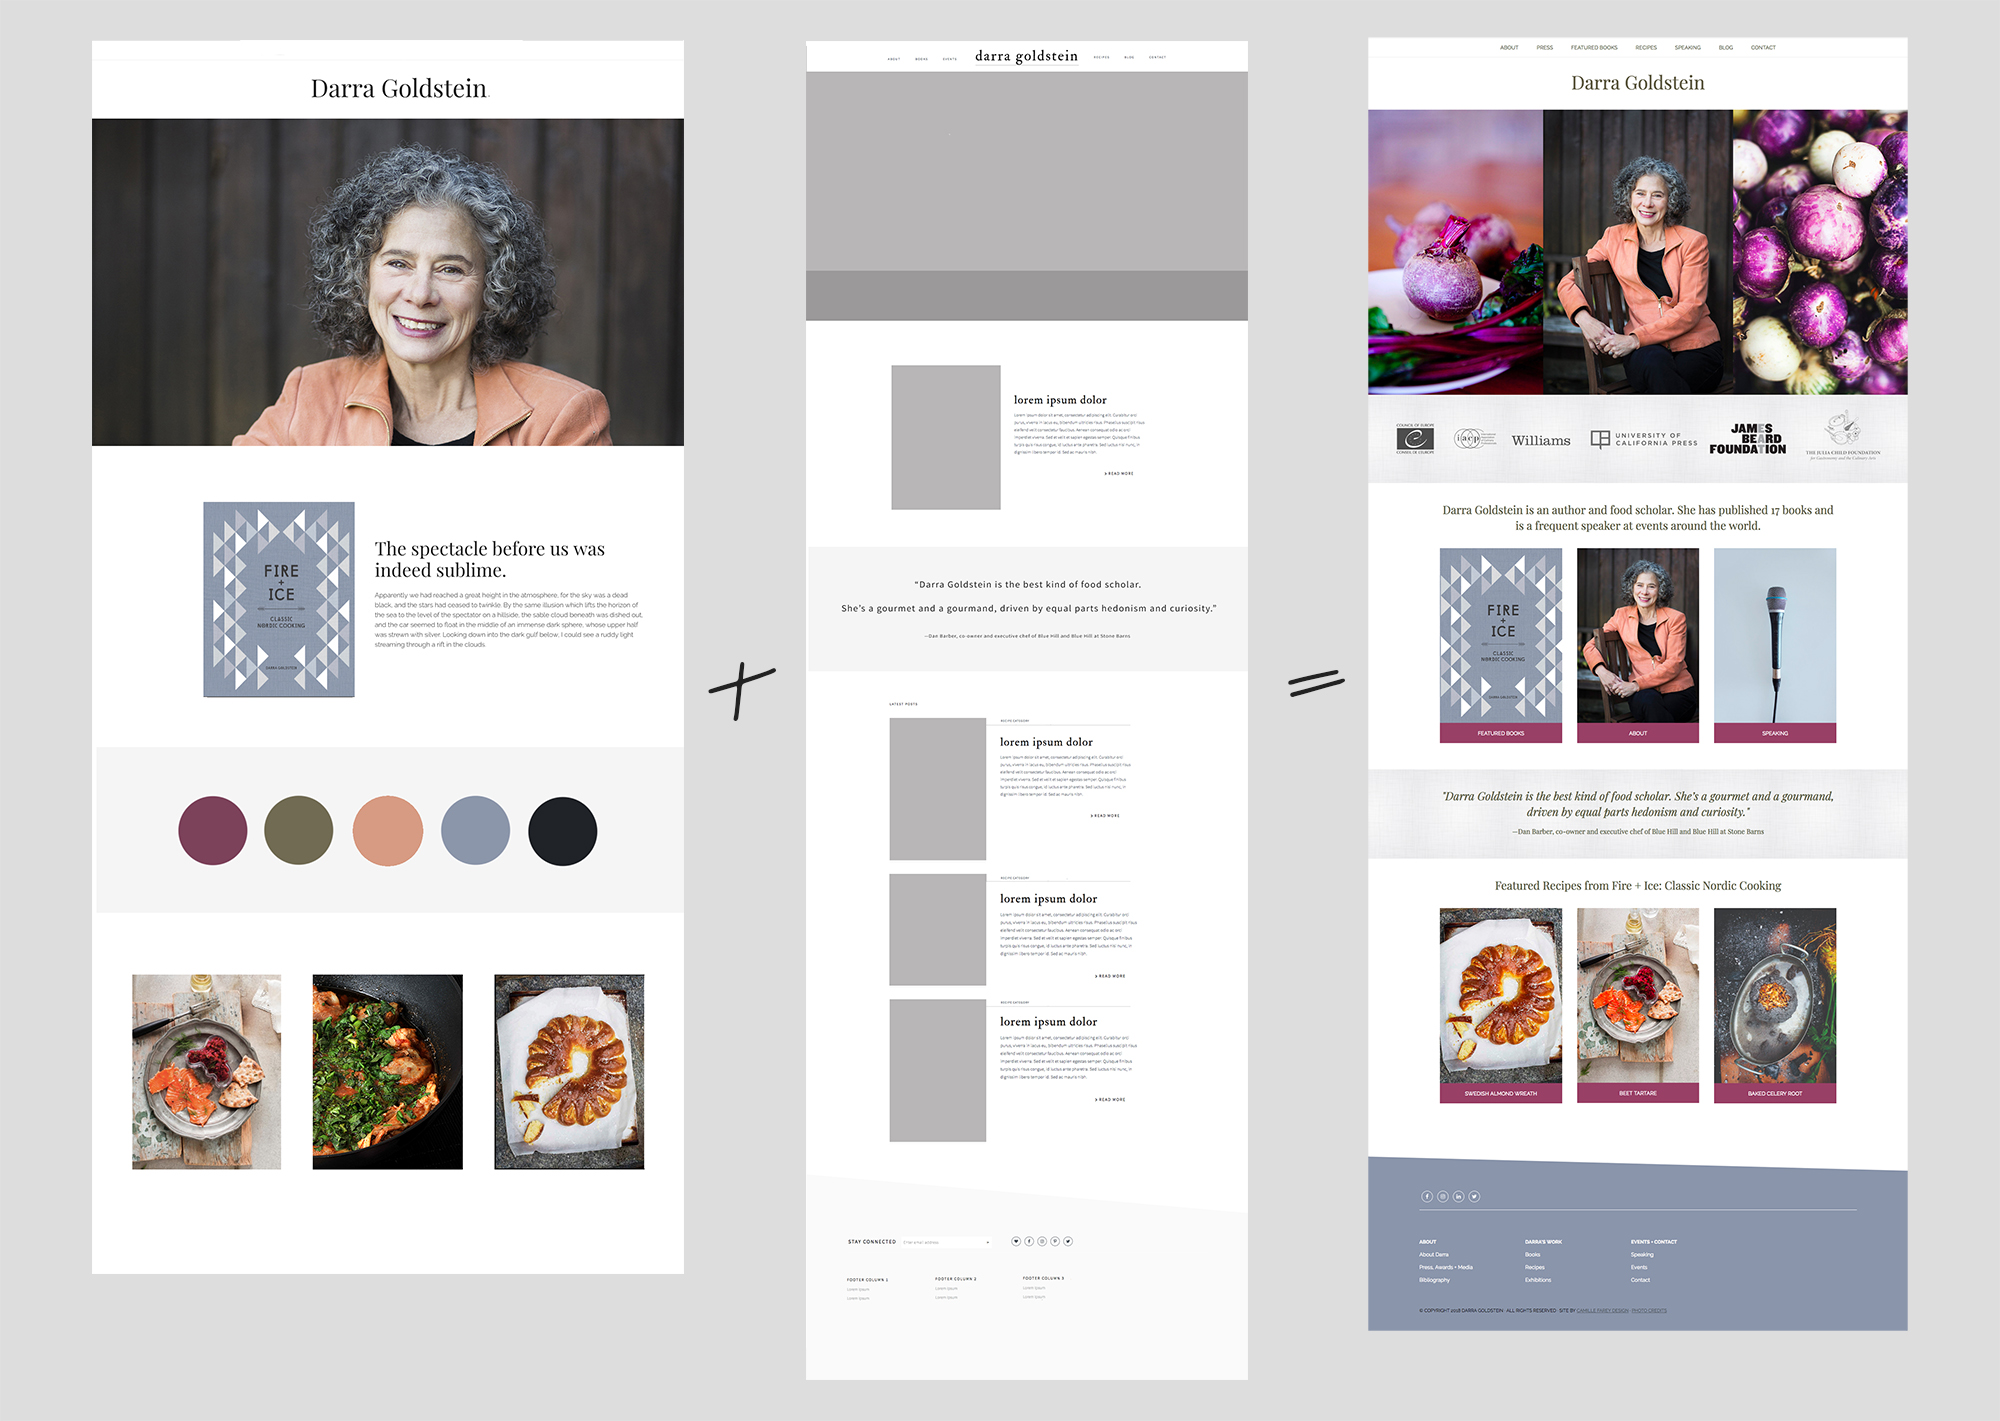 An illustration of the process of website design